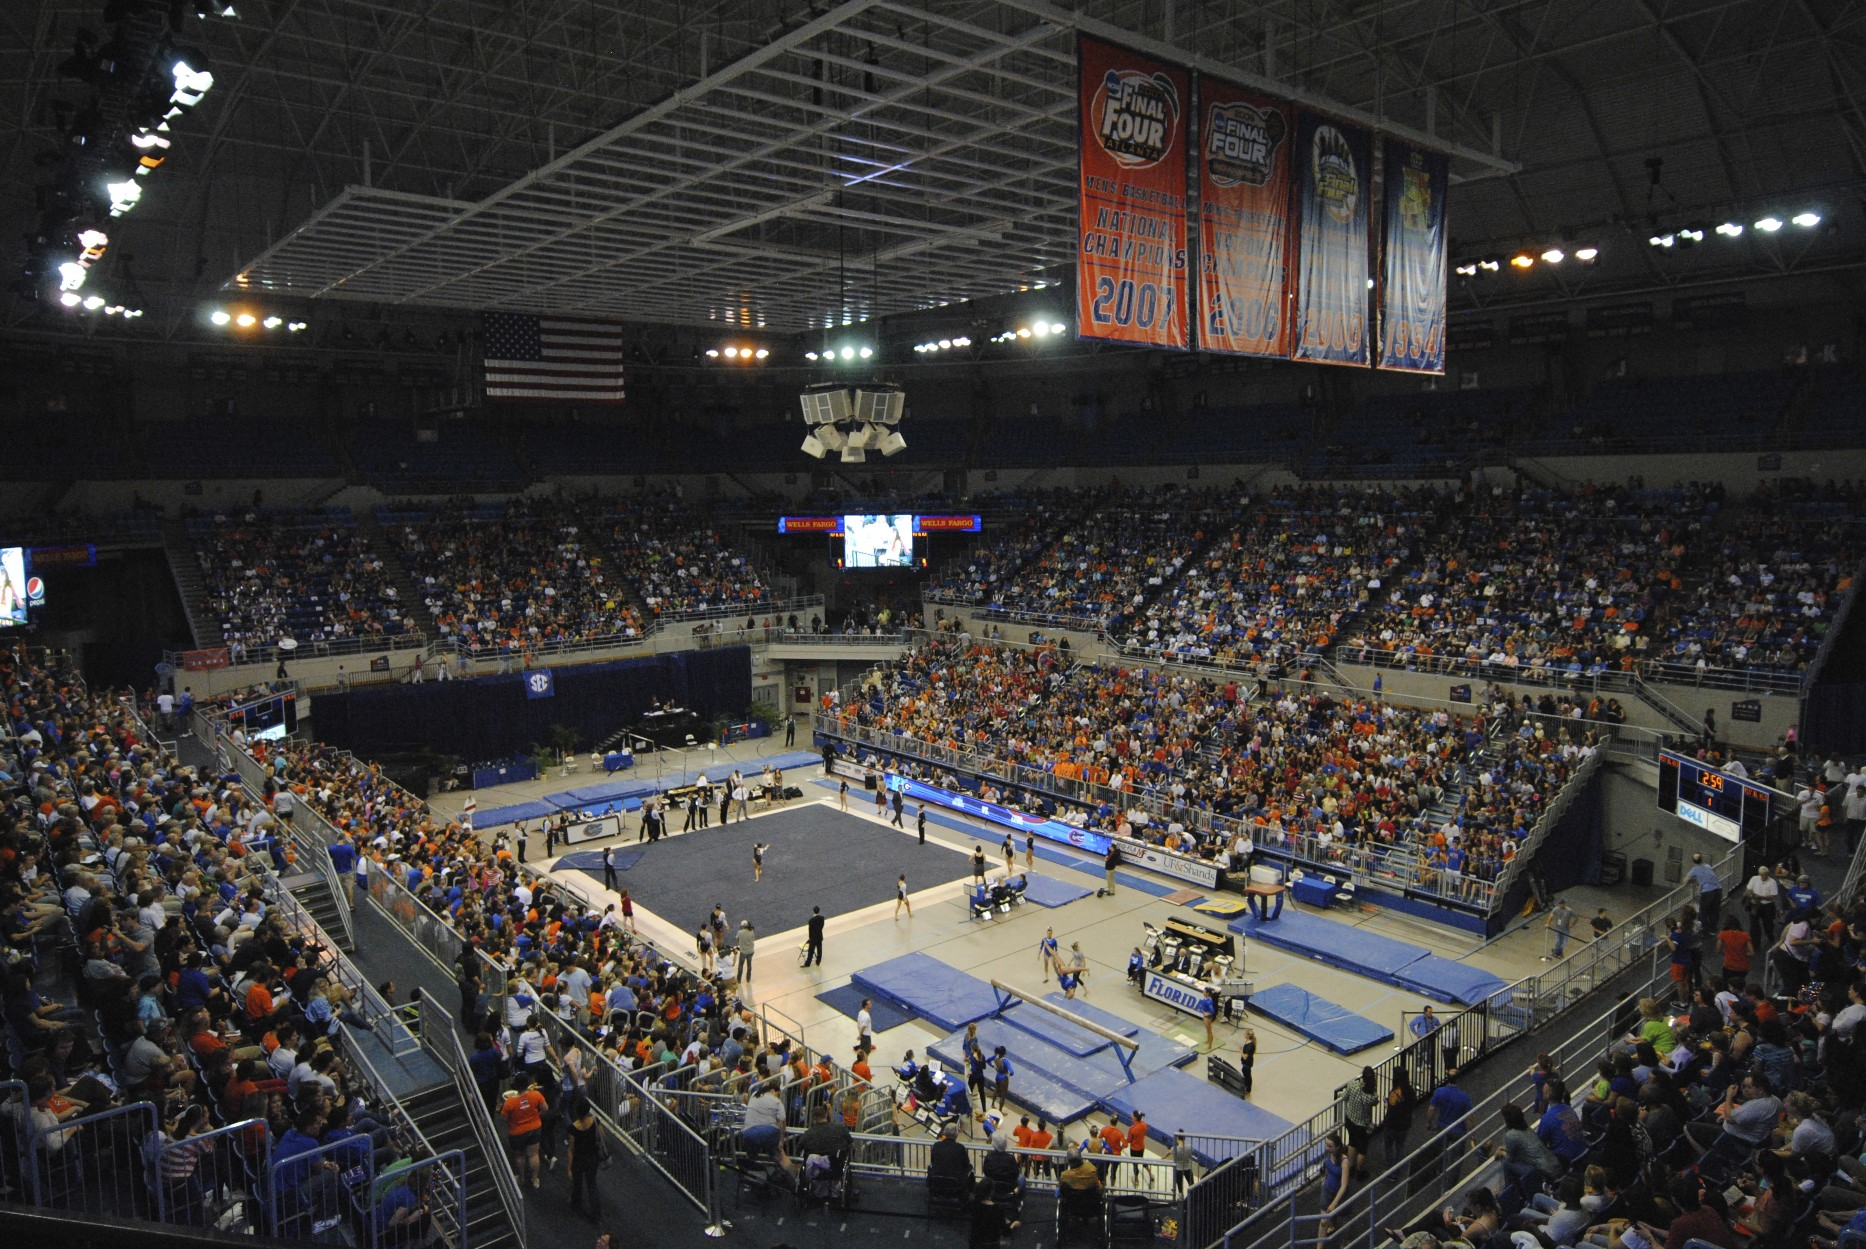 6,134 fans attended the gymnastics meet at the O'Connell center Friday night to watch the Florida Gators take on the Georgia Bulldogs.